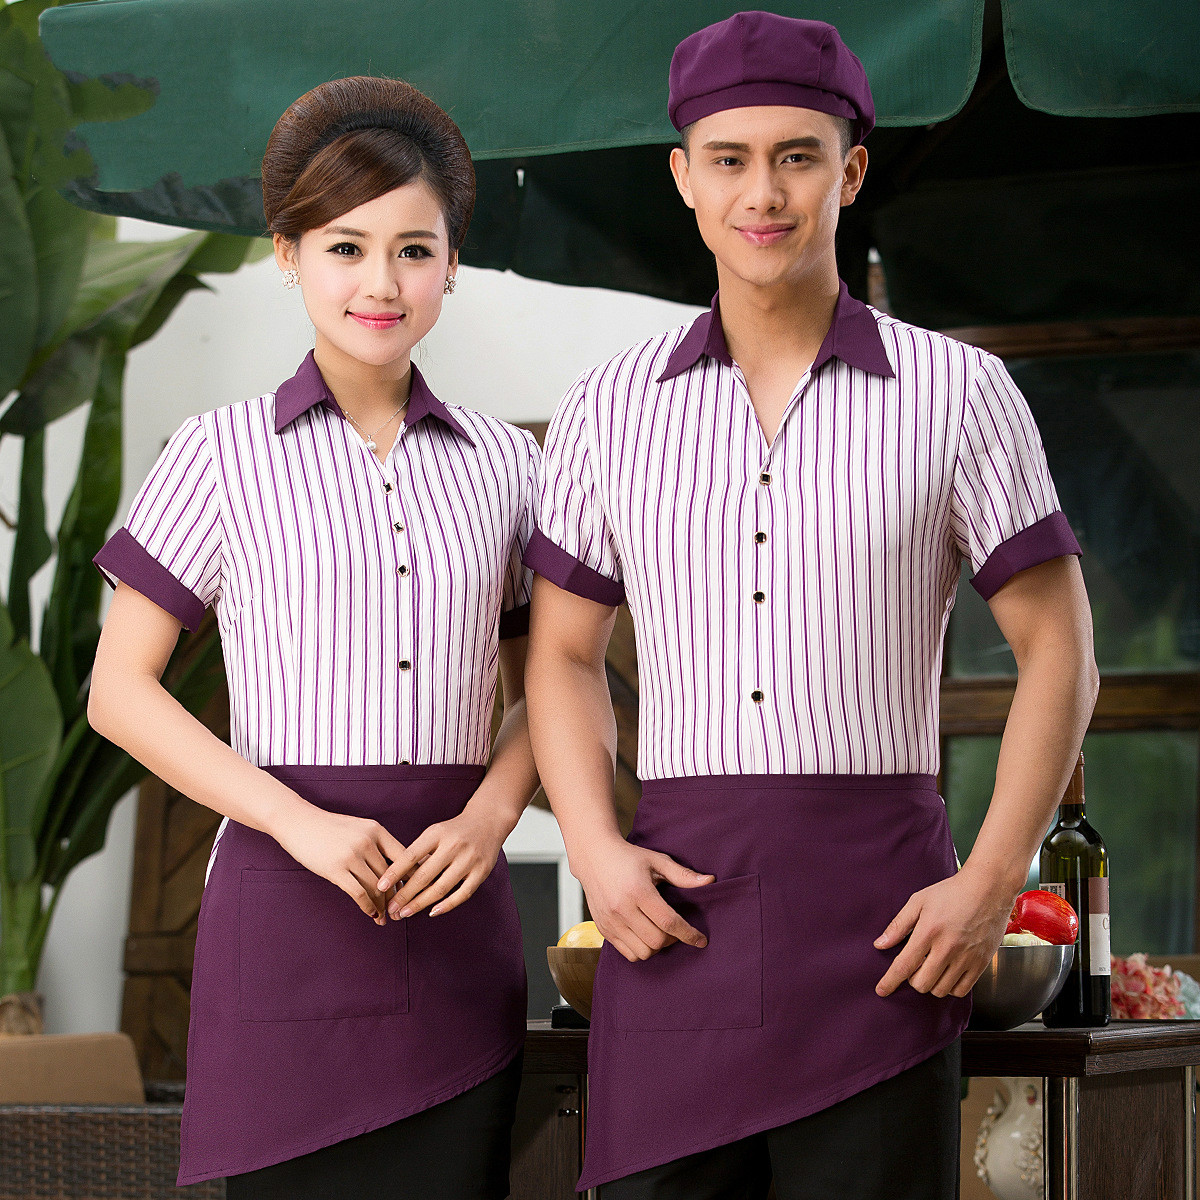 44797618e72 Summer Coffee Shop Waiter Uniform Restaurant Waitress Shirt + Apron Work  Wear Sets Hotel Fast Food Service Staff Clothing 89-in Chef Jackets from  Novelty ...